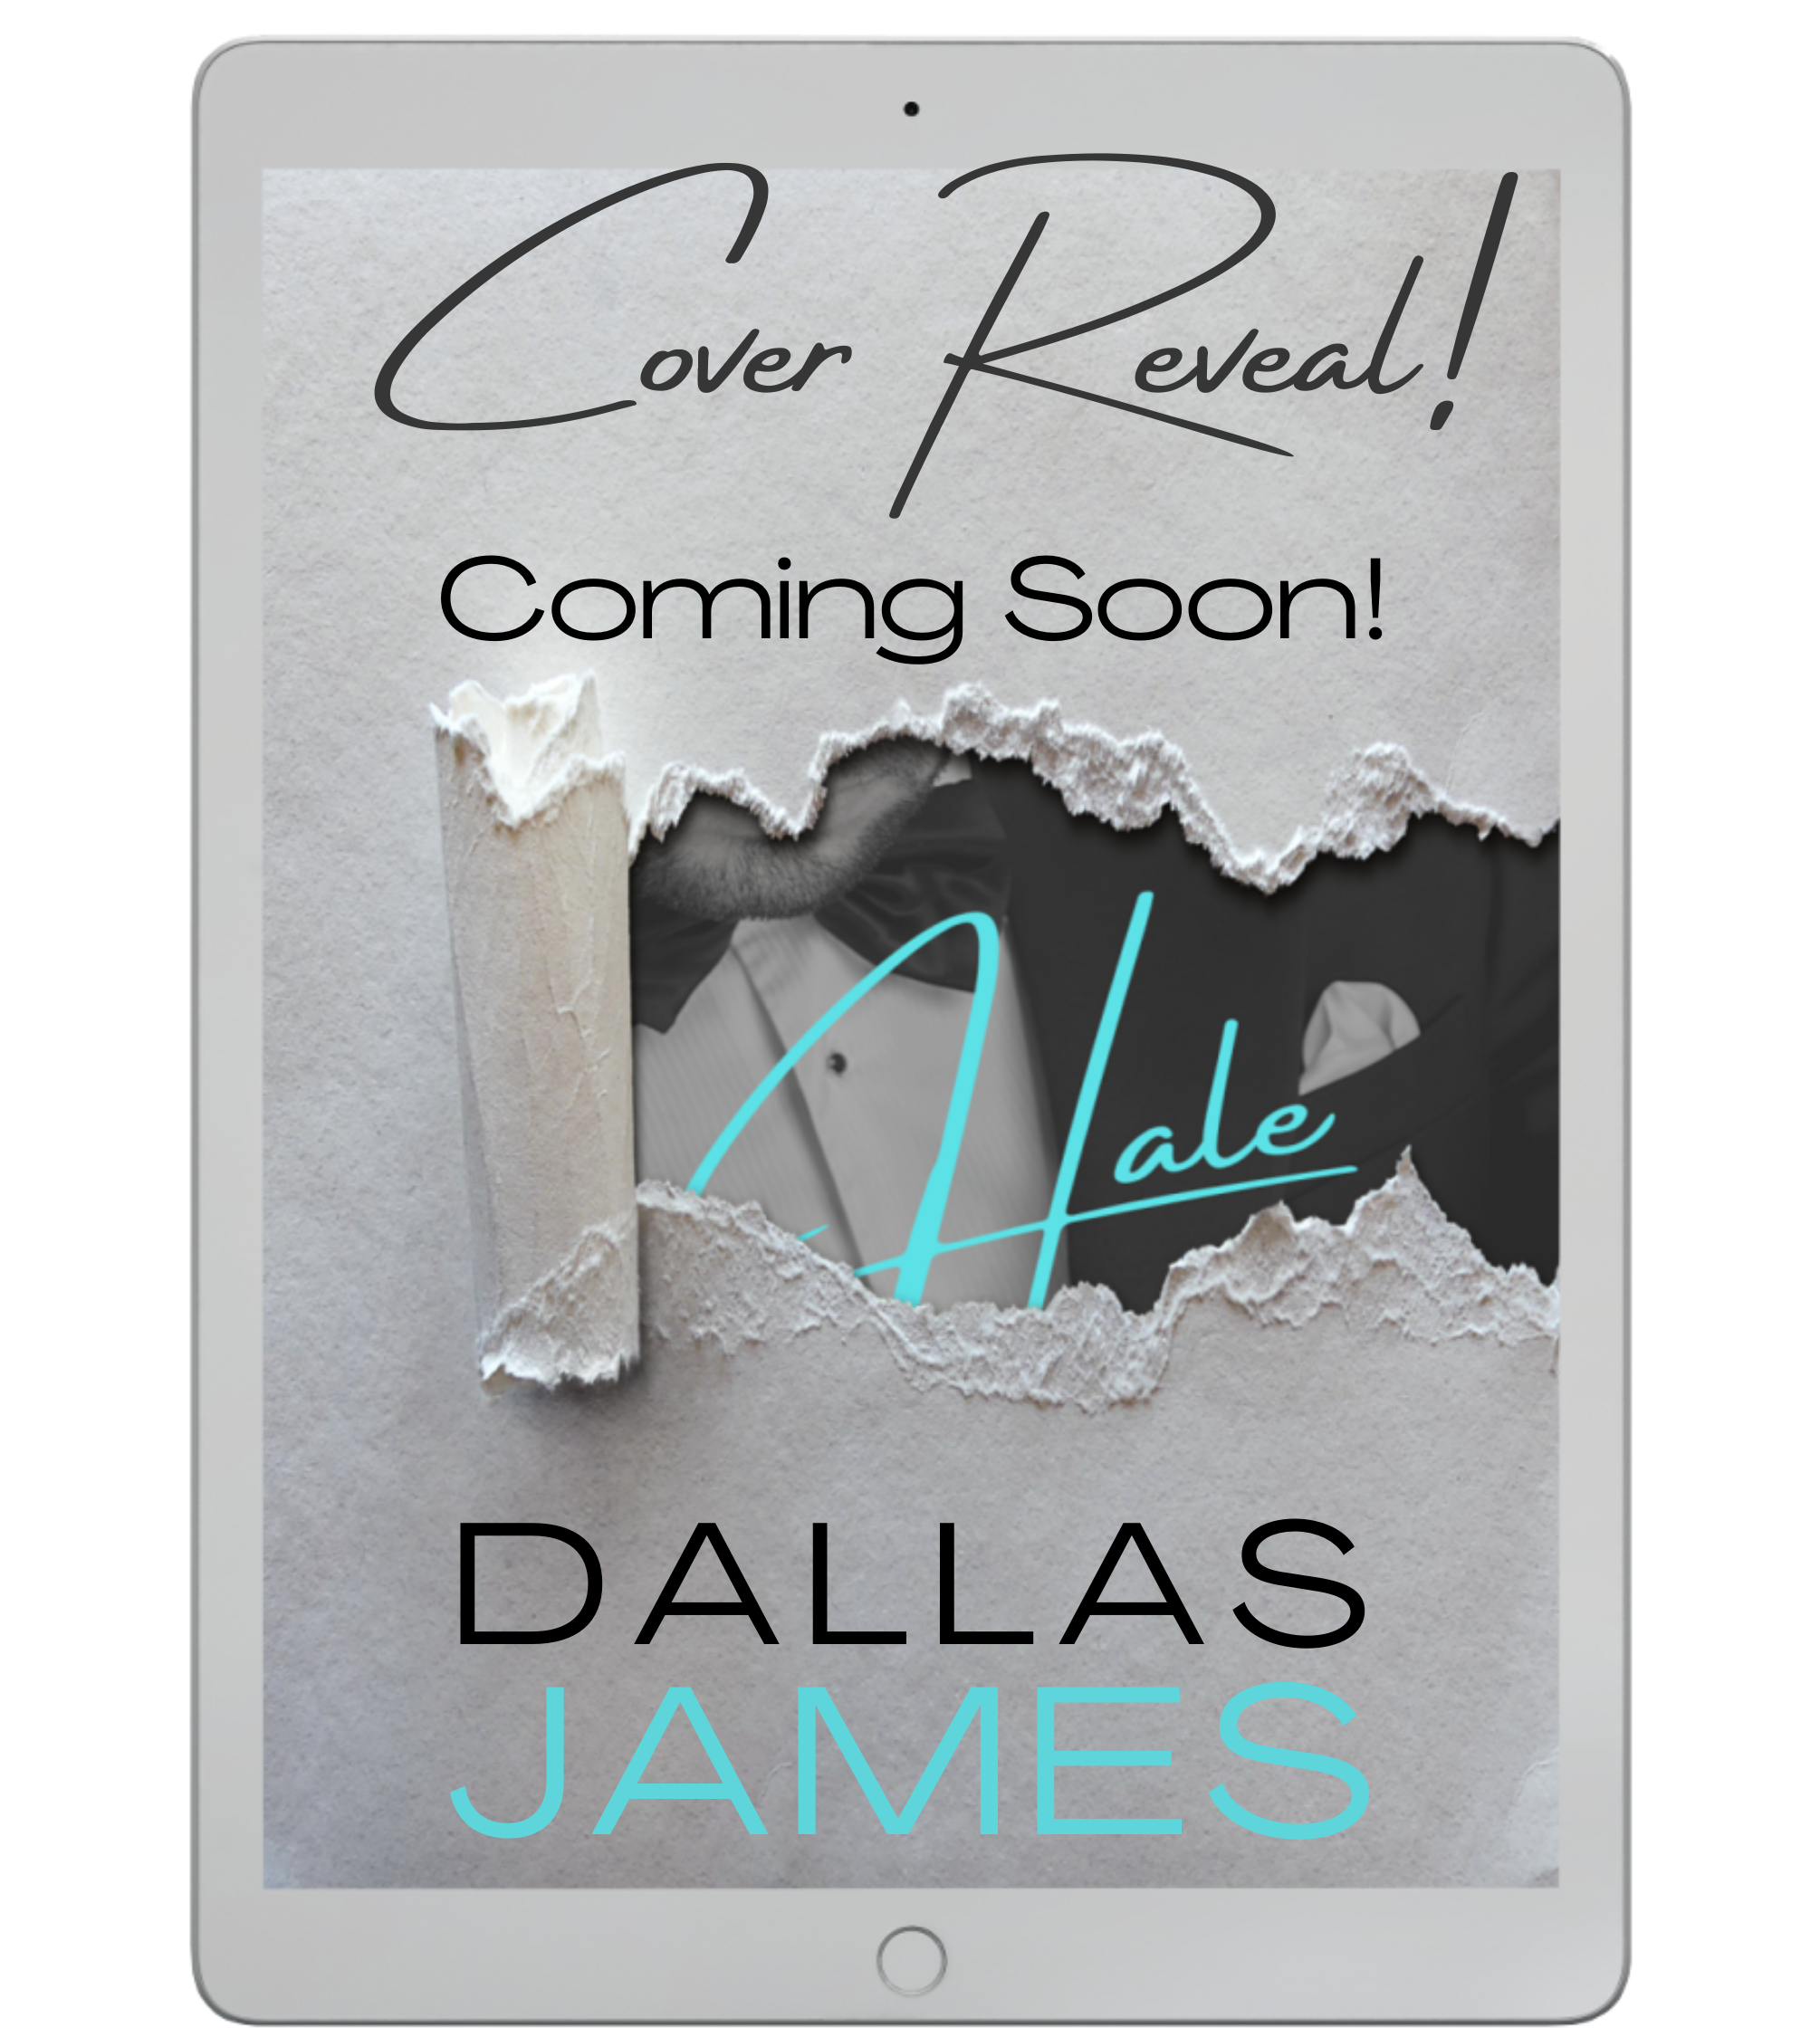 Cover Reveal Coming Soon! (4)